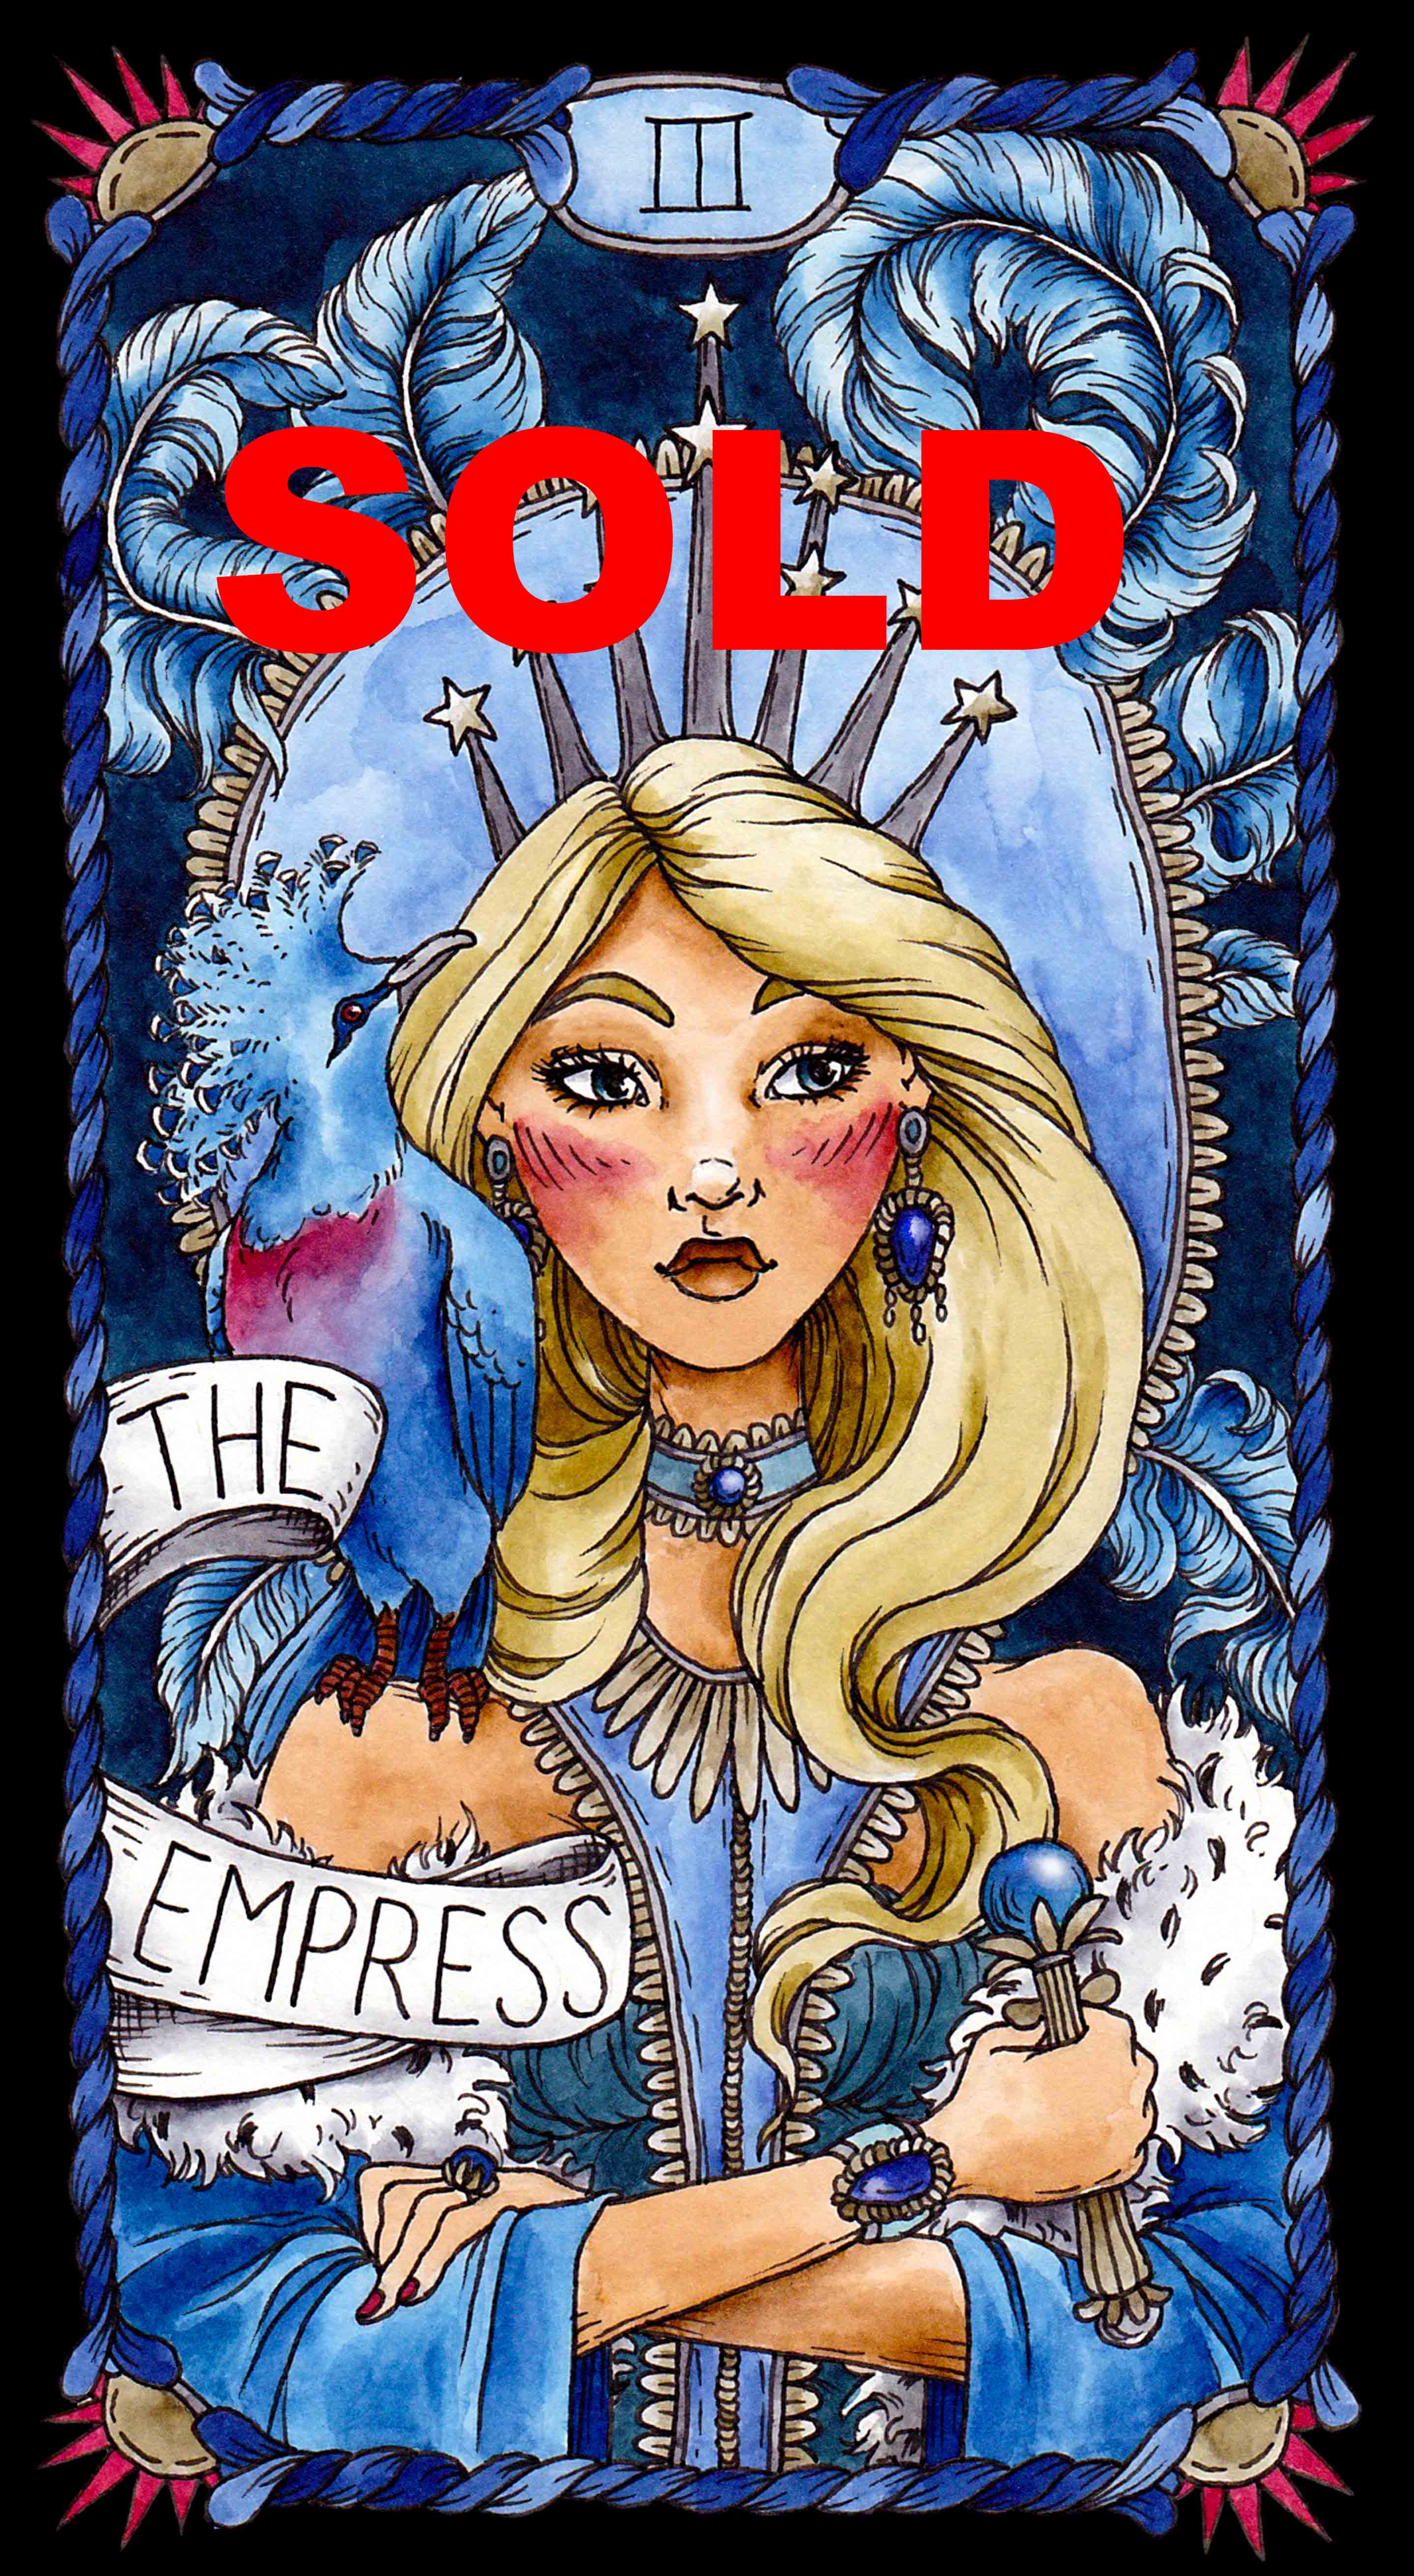 03 The Empress Sold